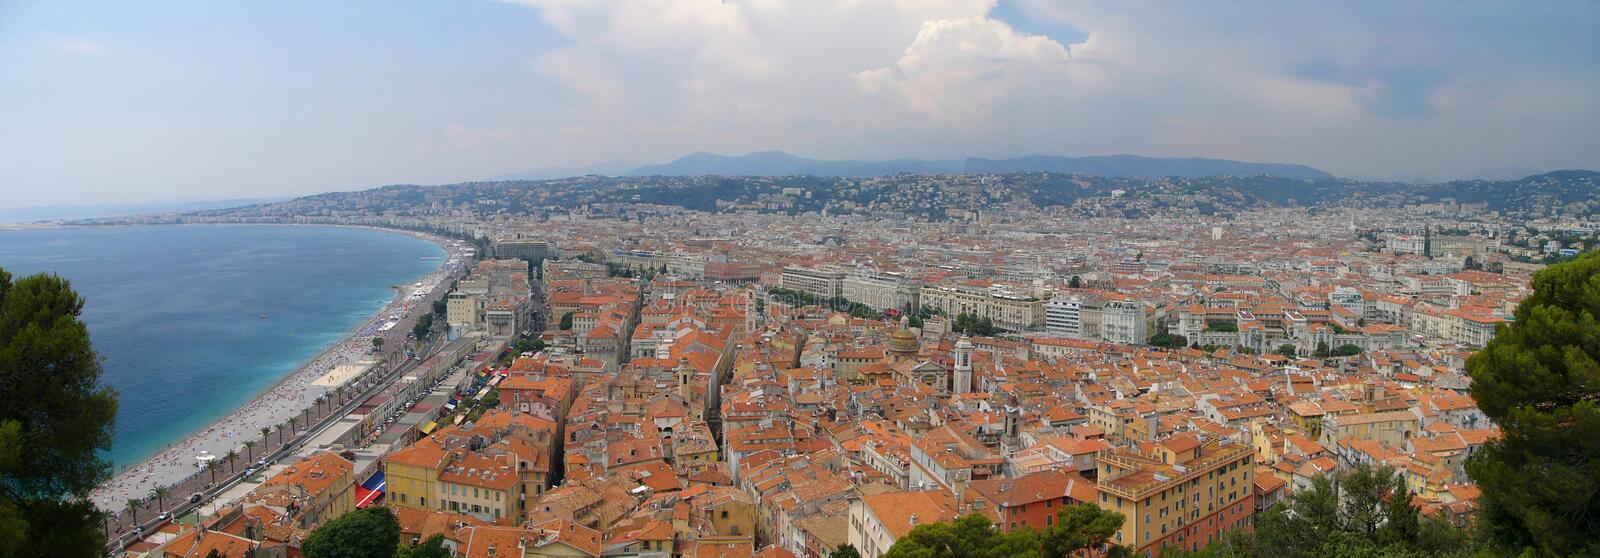 Panorama of Nice /France/. Panoramic view of the Promenades des Anglais and the Old town in Nice royalty free stock photo